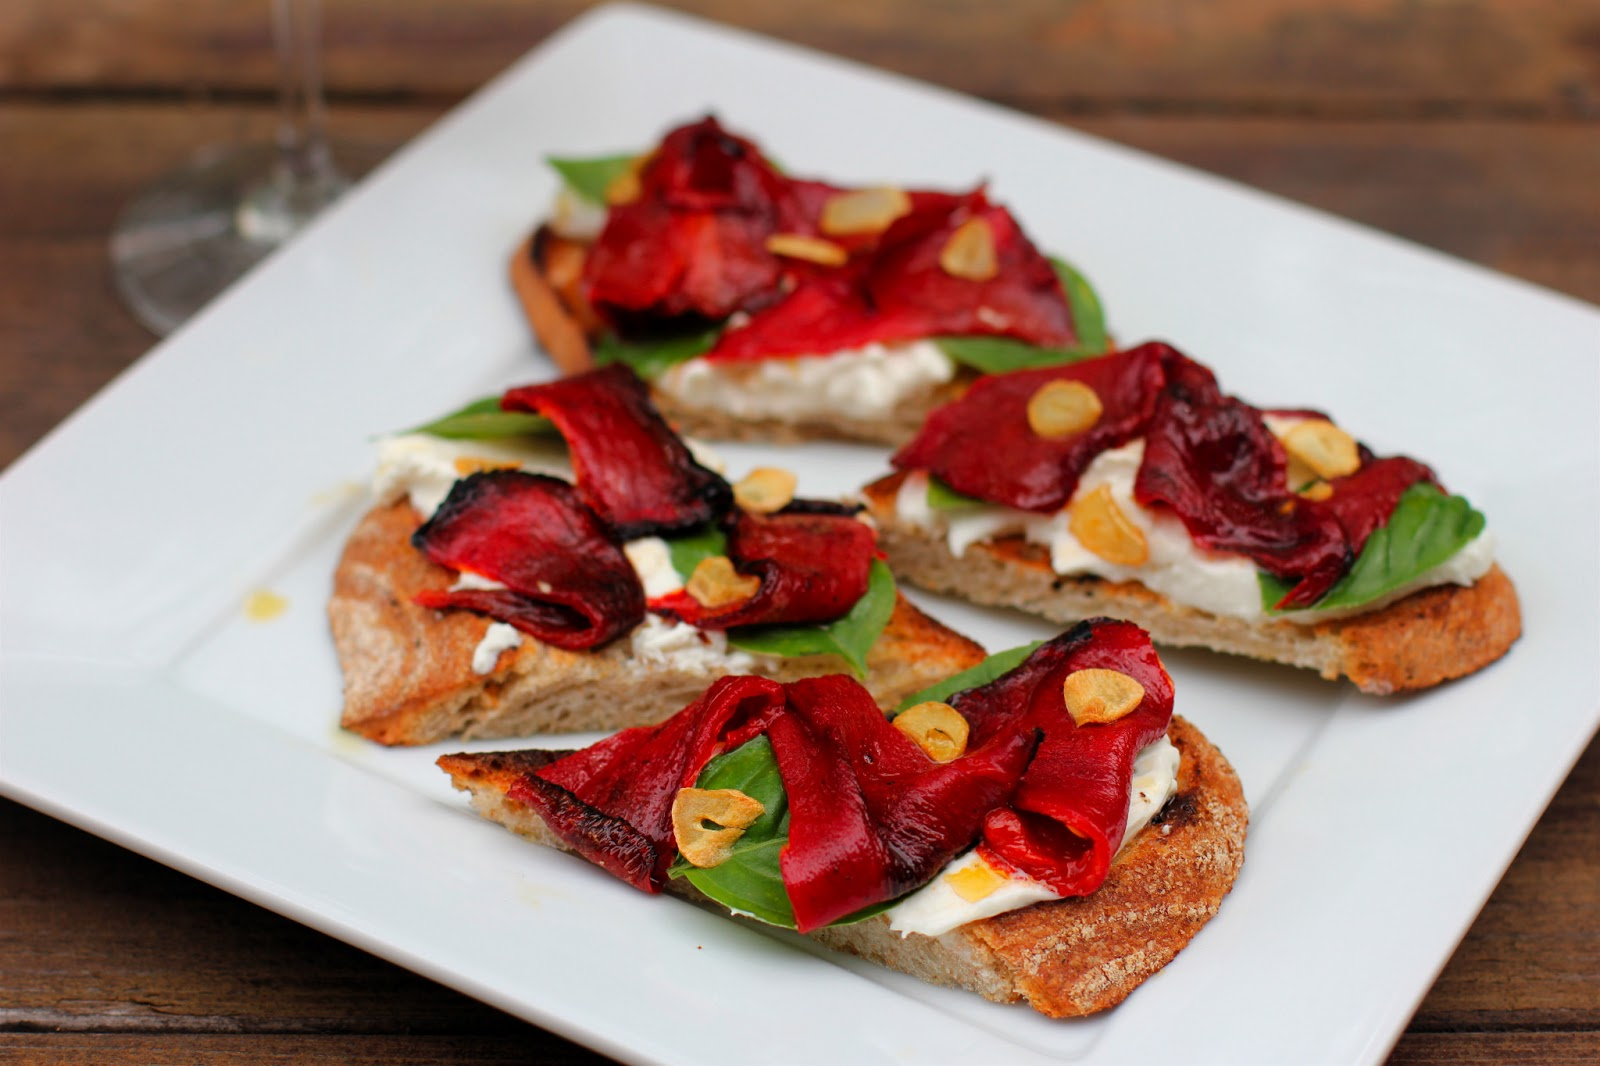 ... Food Advocate: Grilled Bread with Fried Piquillo Peppers and Burrata